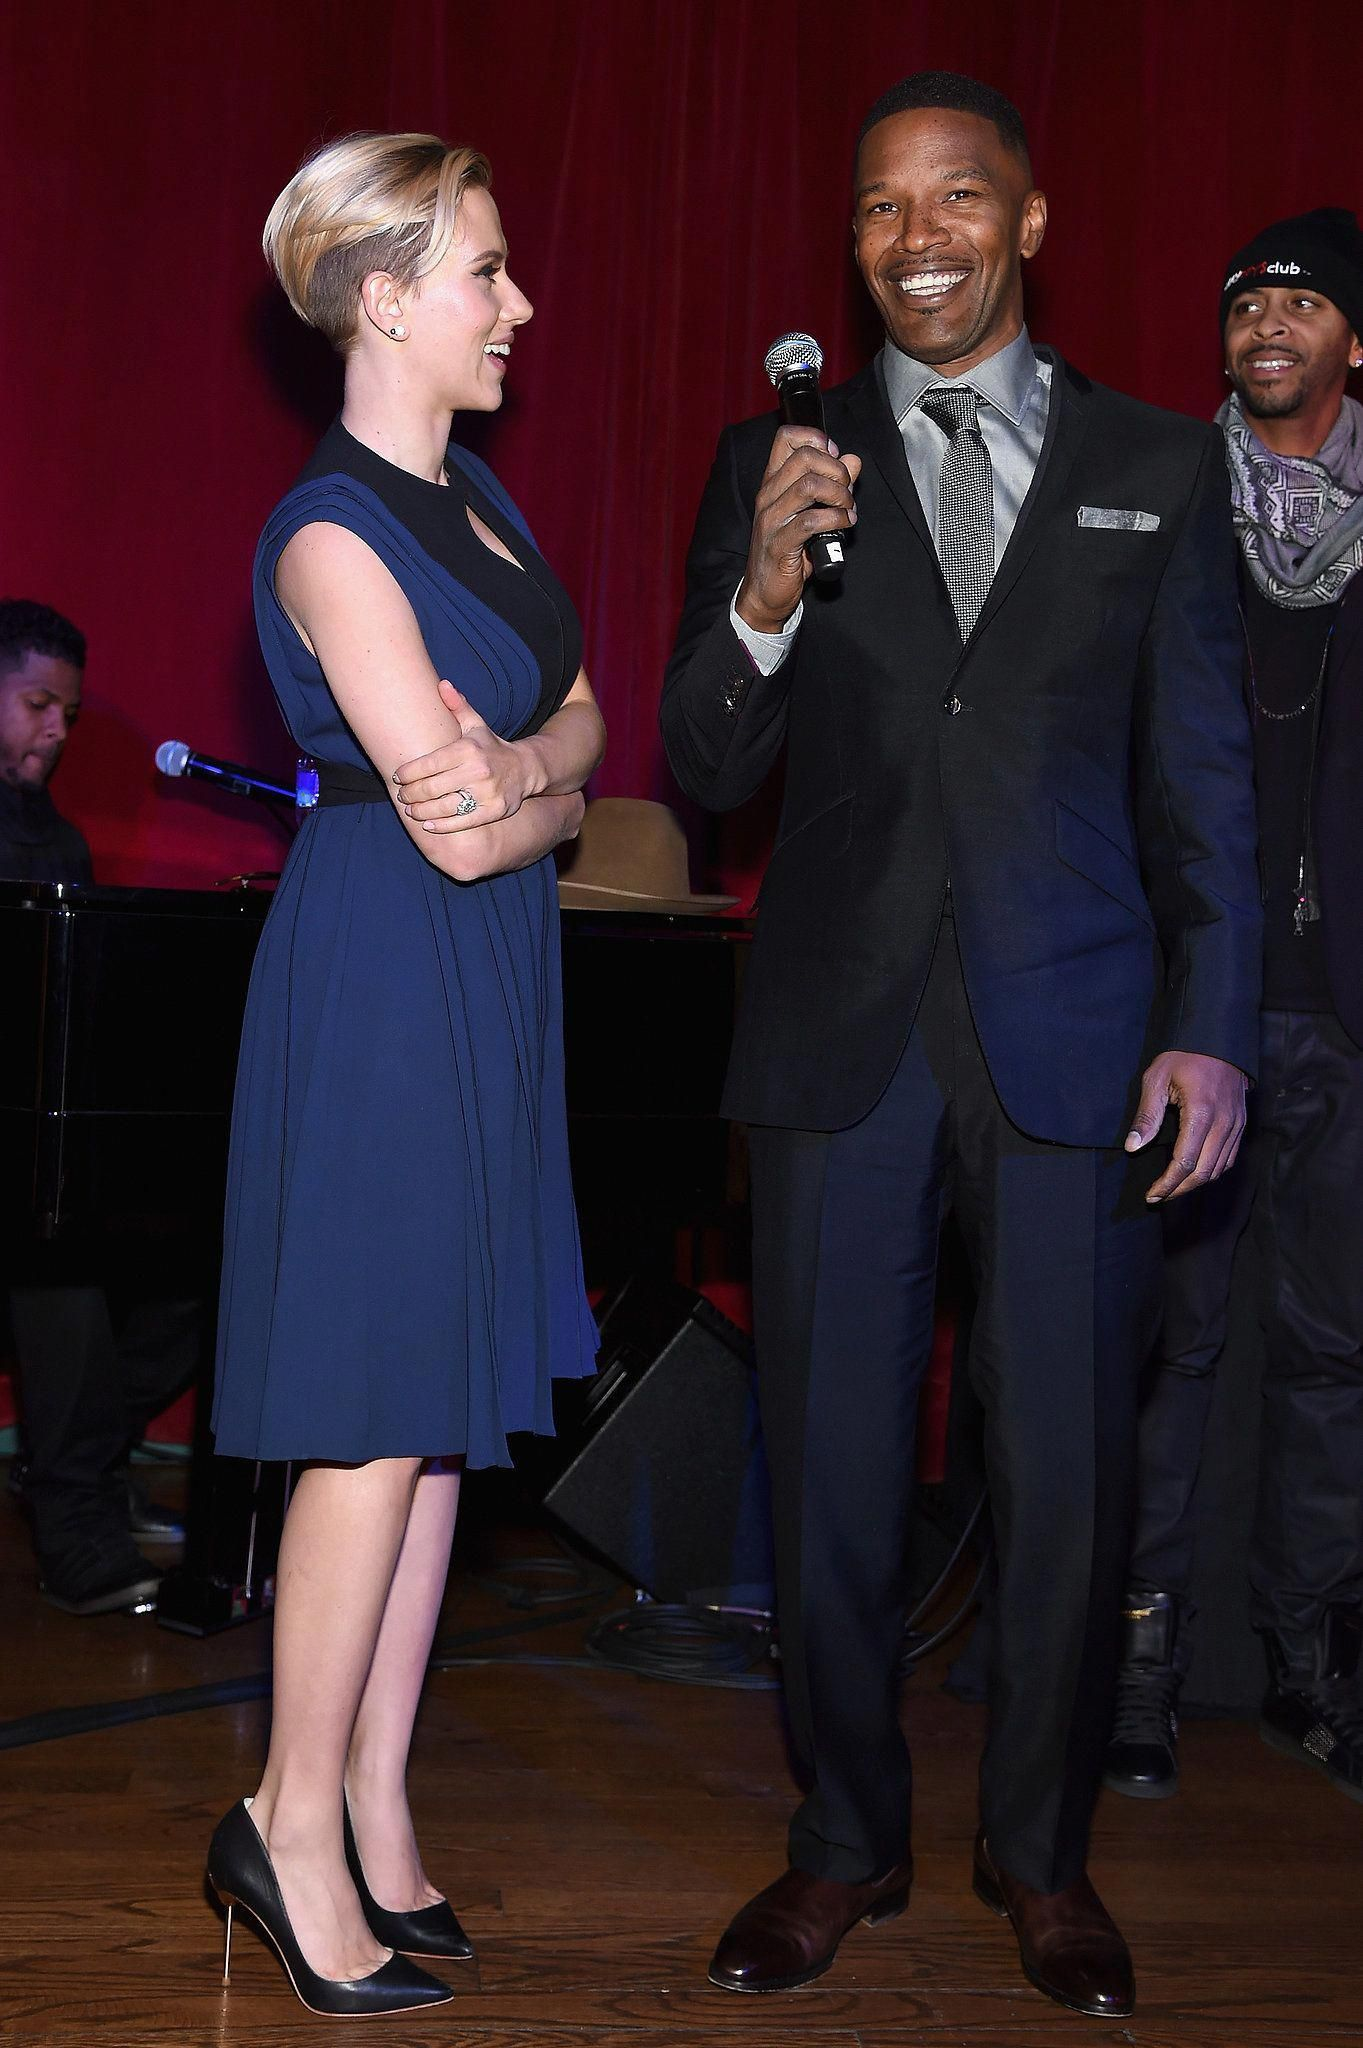 Check Out Newlywed Scarlett Johansson's Wedding Ring!